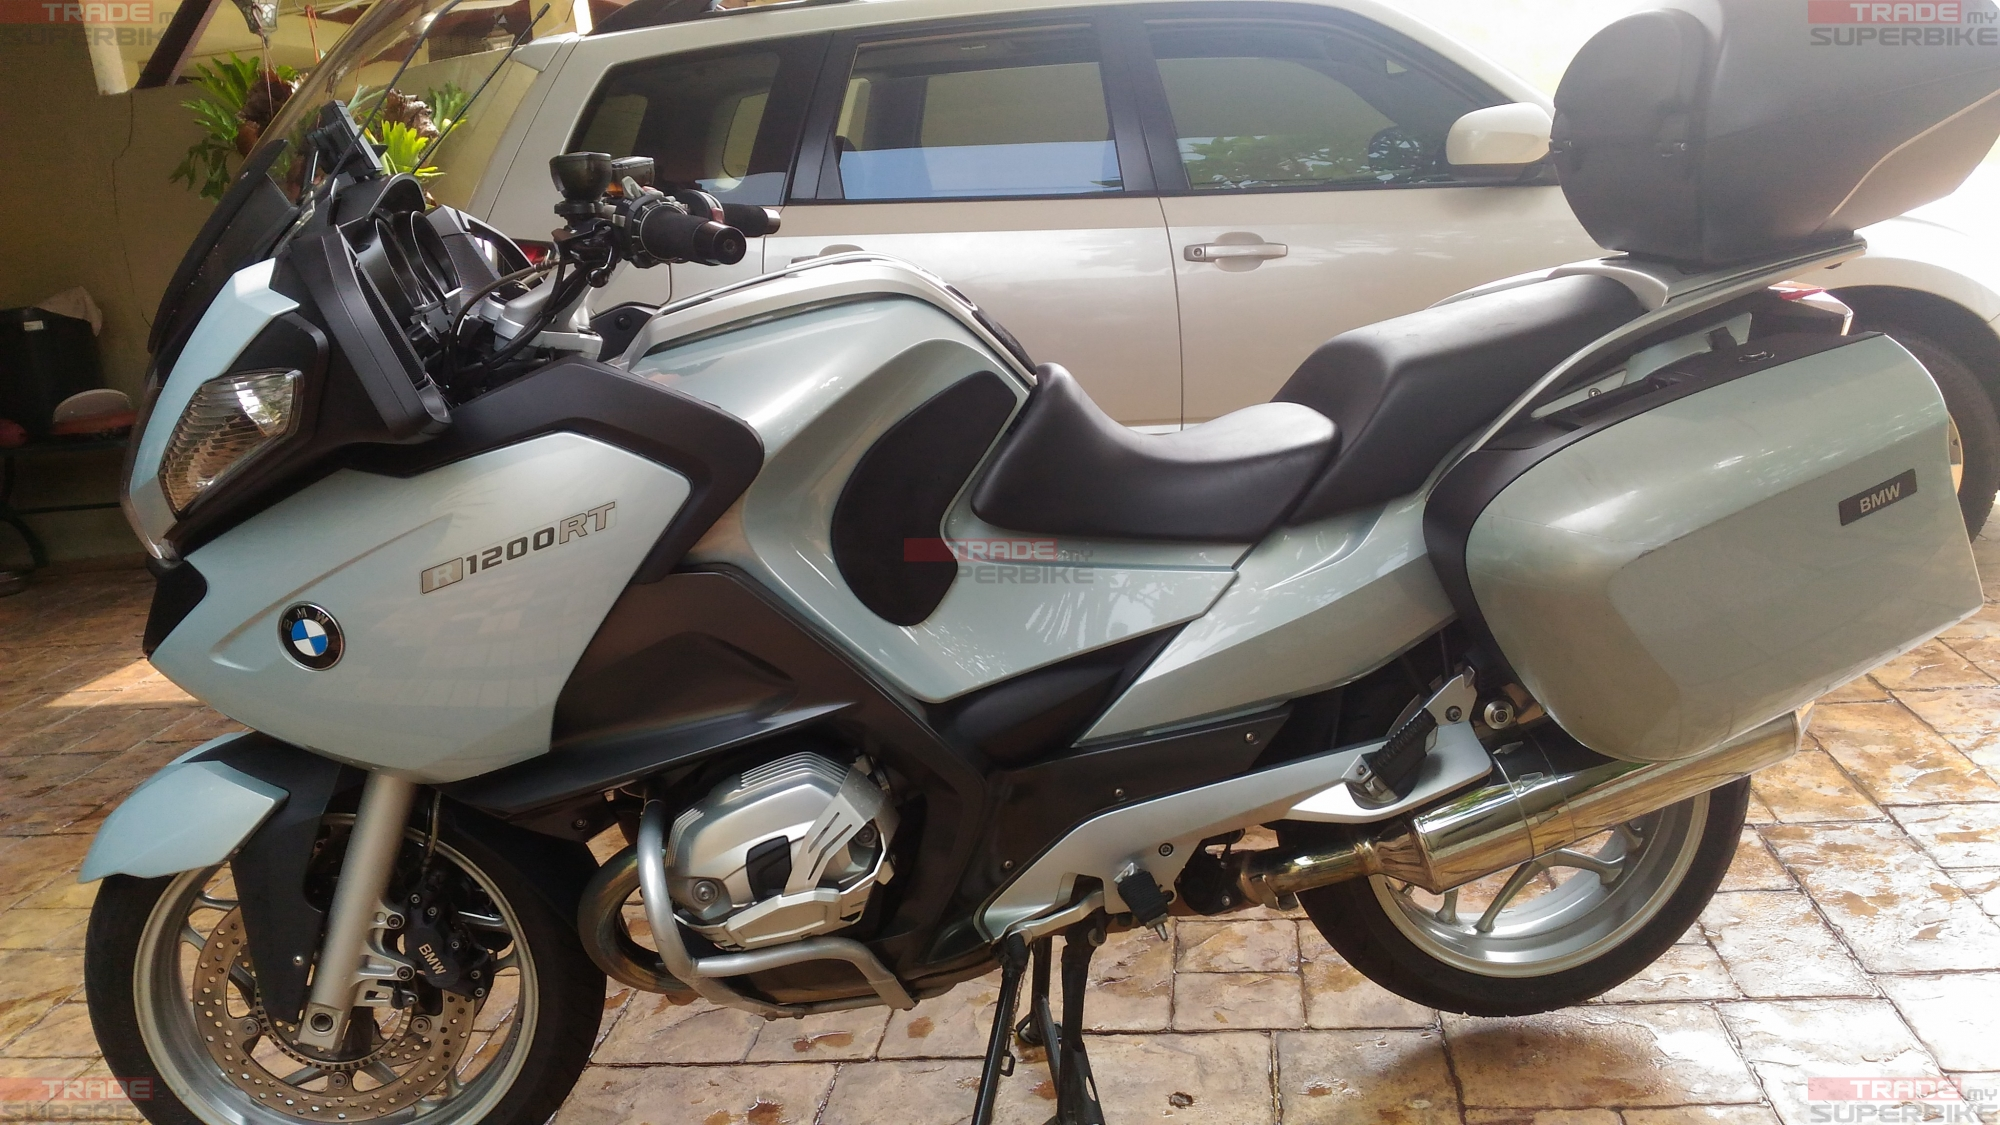 Bmw R1200rt With Accessories Trademysuperbike Com My